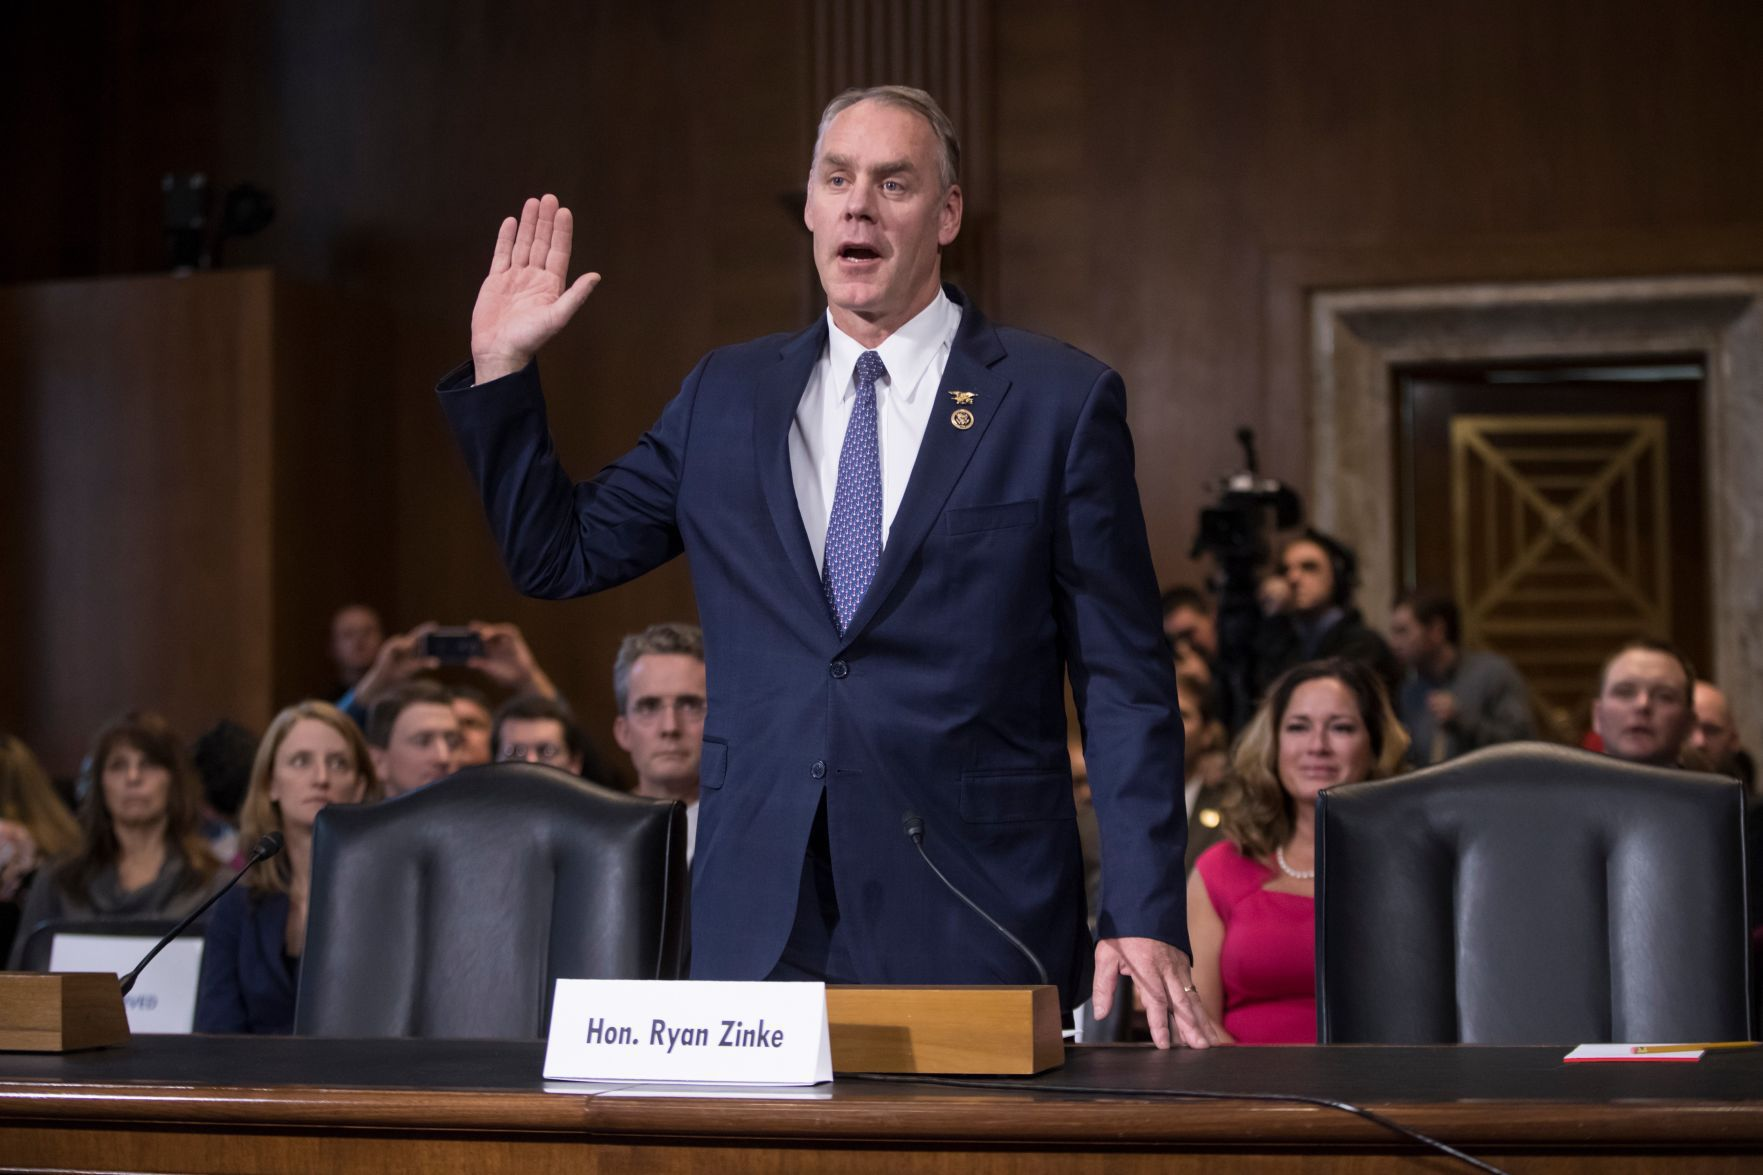 Interior nominee Zinke clears Senate hurdle on way to confirmation